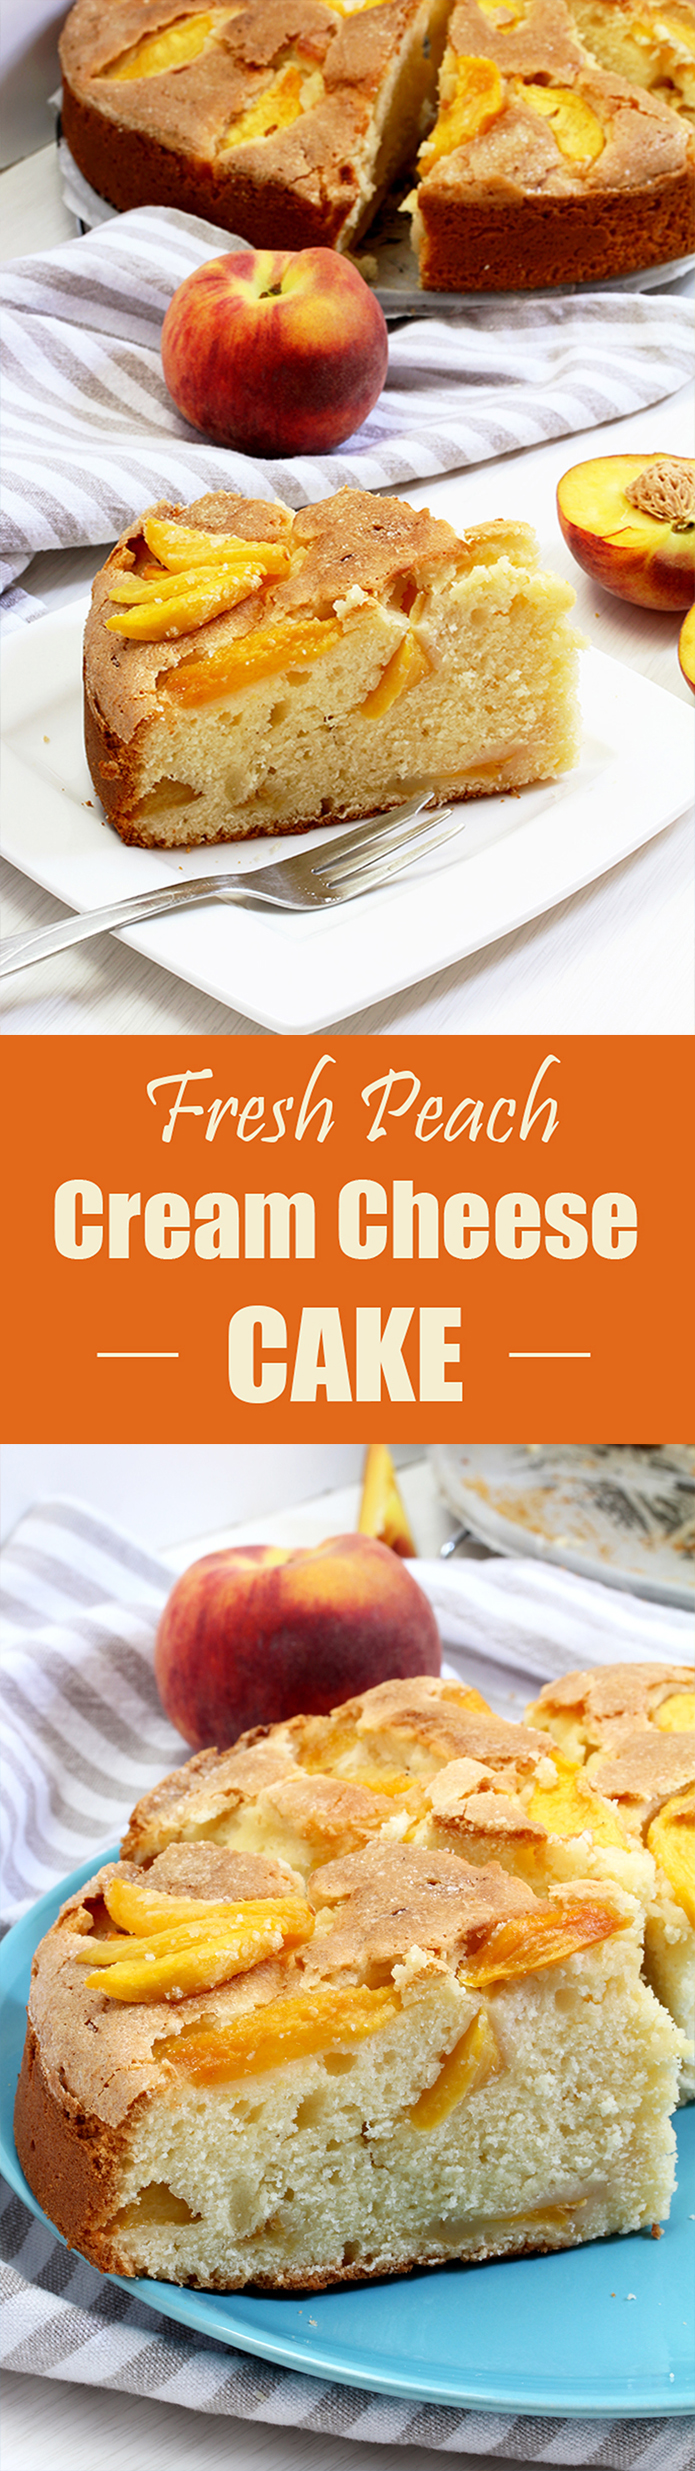 Fresh Peach Cream Cheese Cake